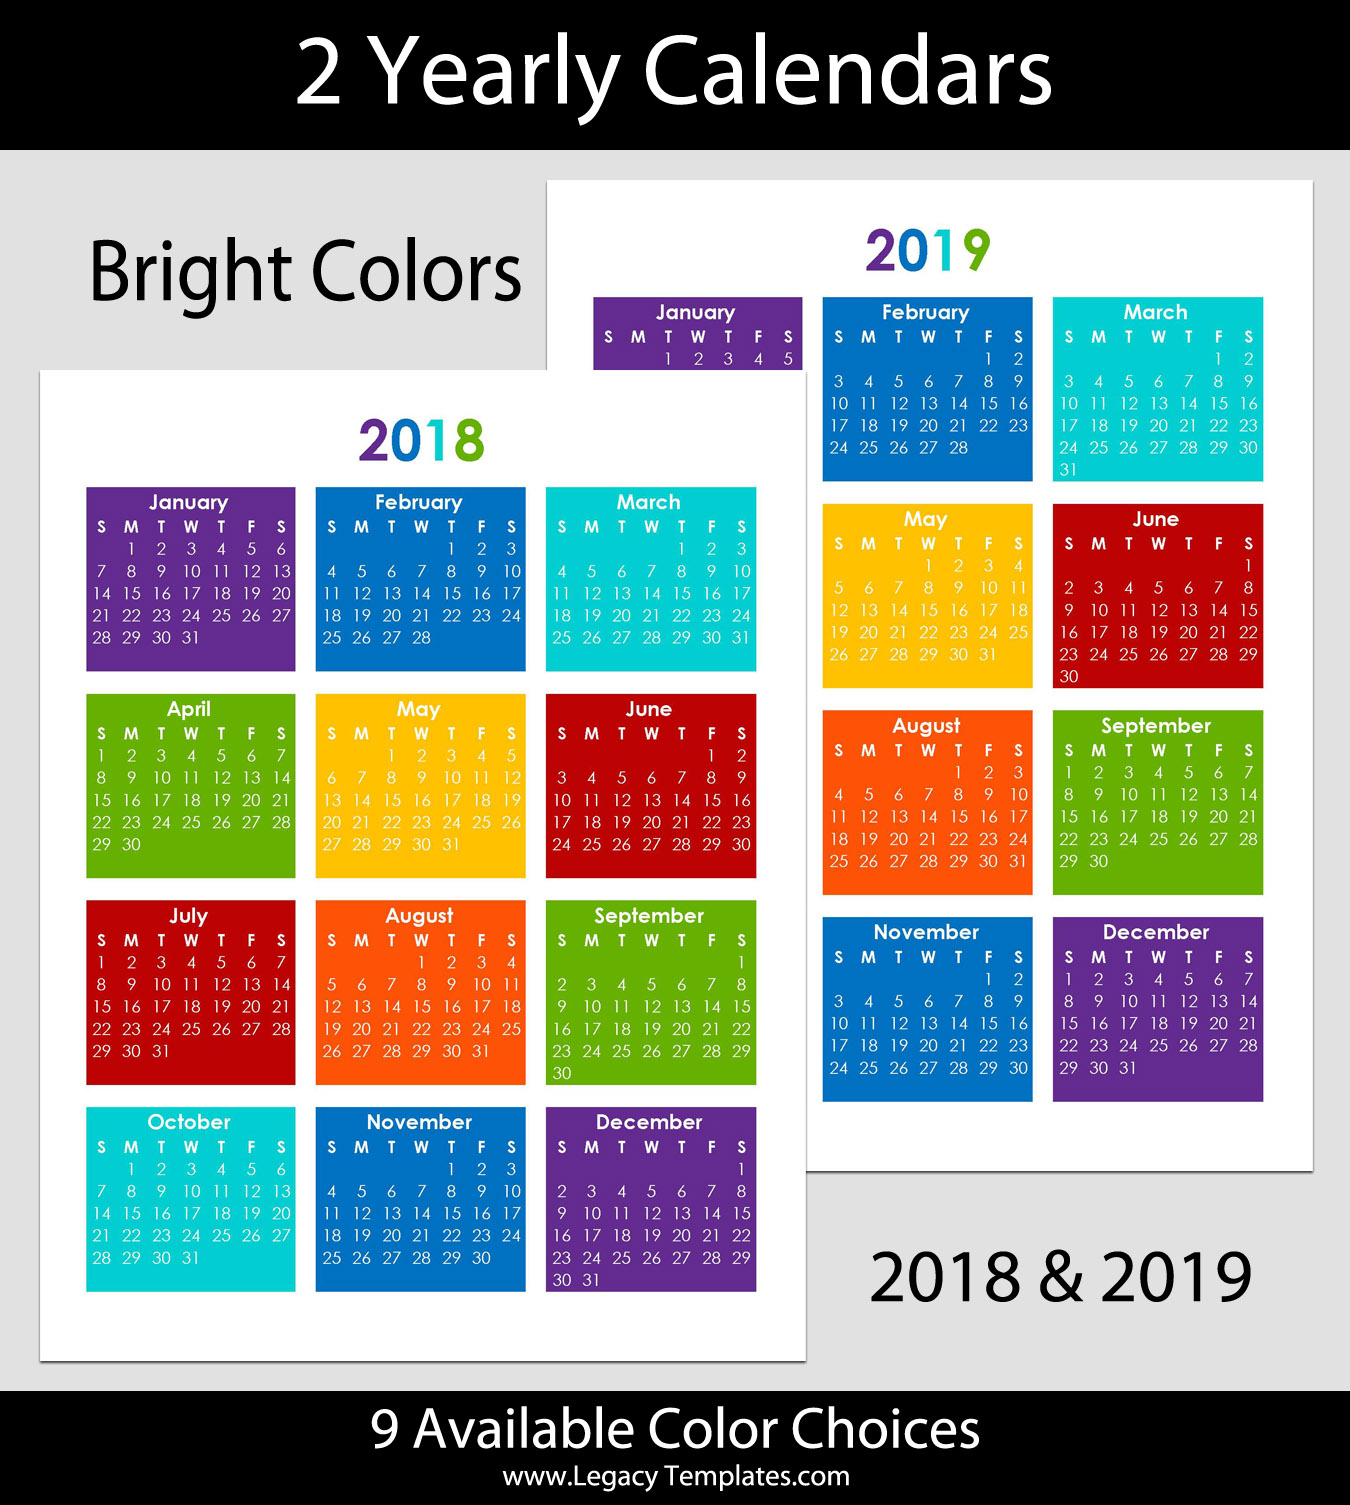 2018 & 2019 Yearly Calendar – 8.5 x 11 | Legacy Templates